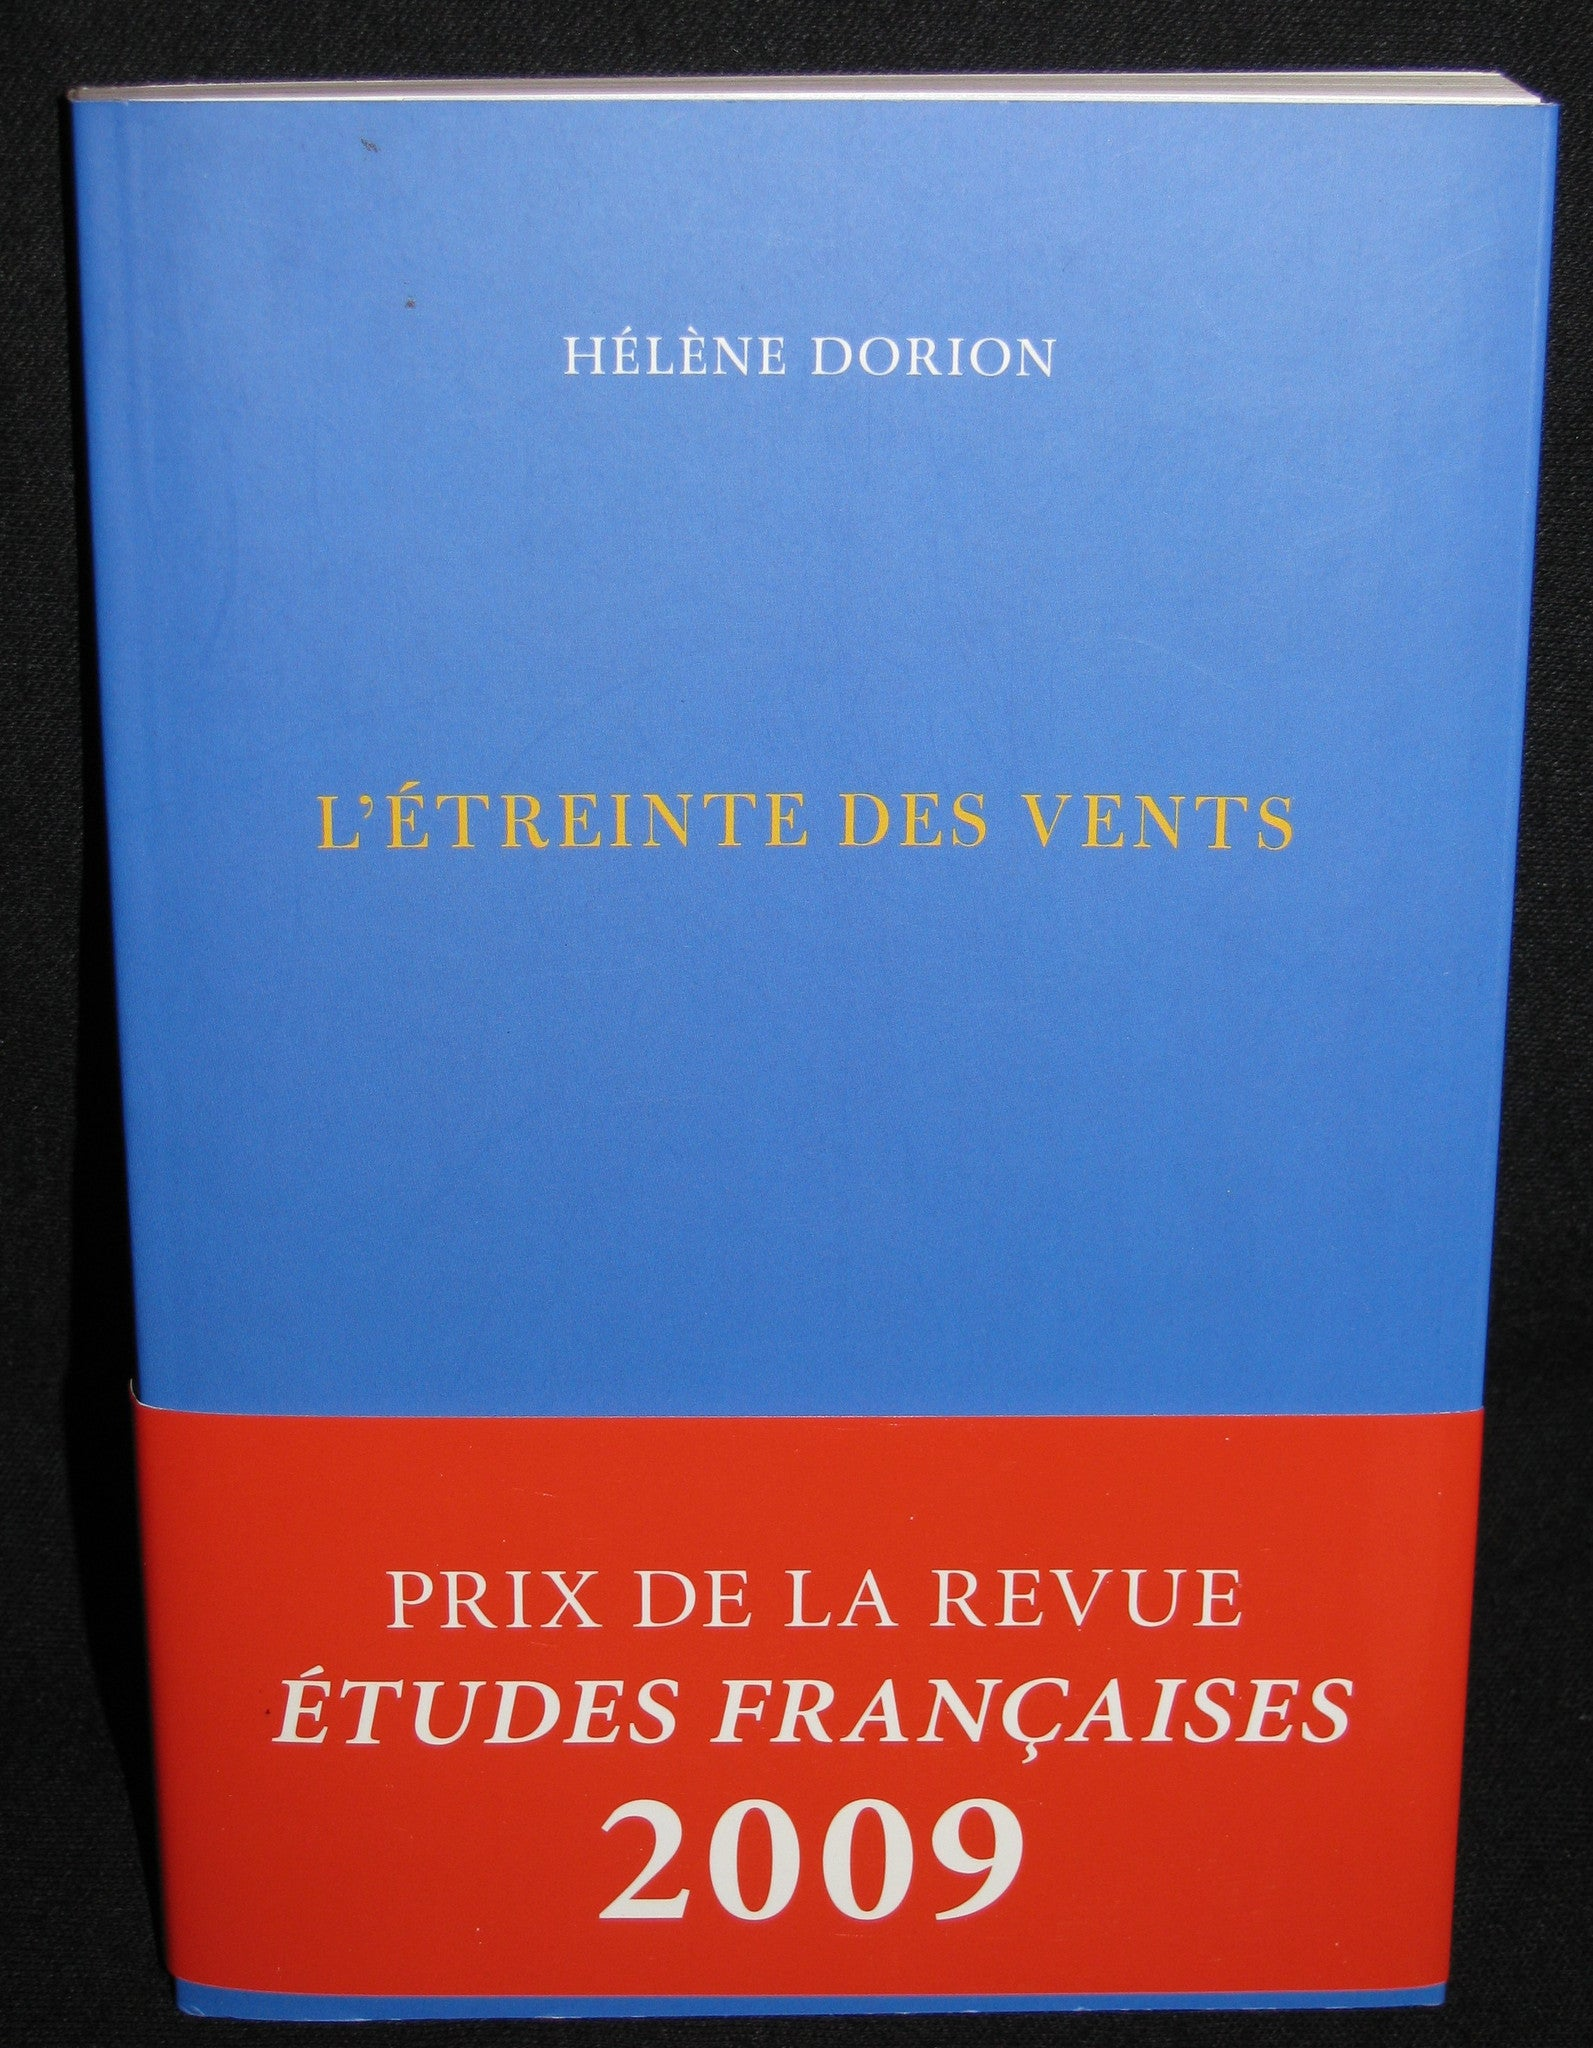 2009 French Poetry Book - L'etreinte des vents - Helene Dorion - First Edition